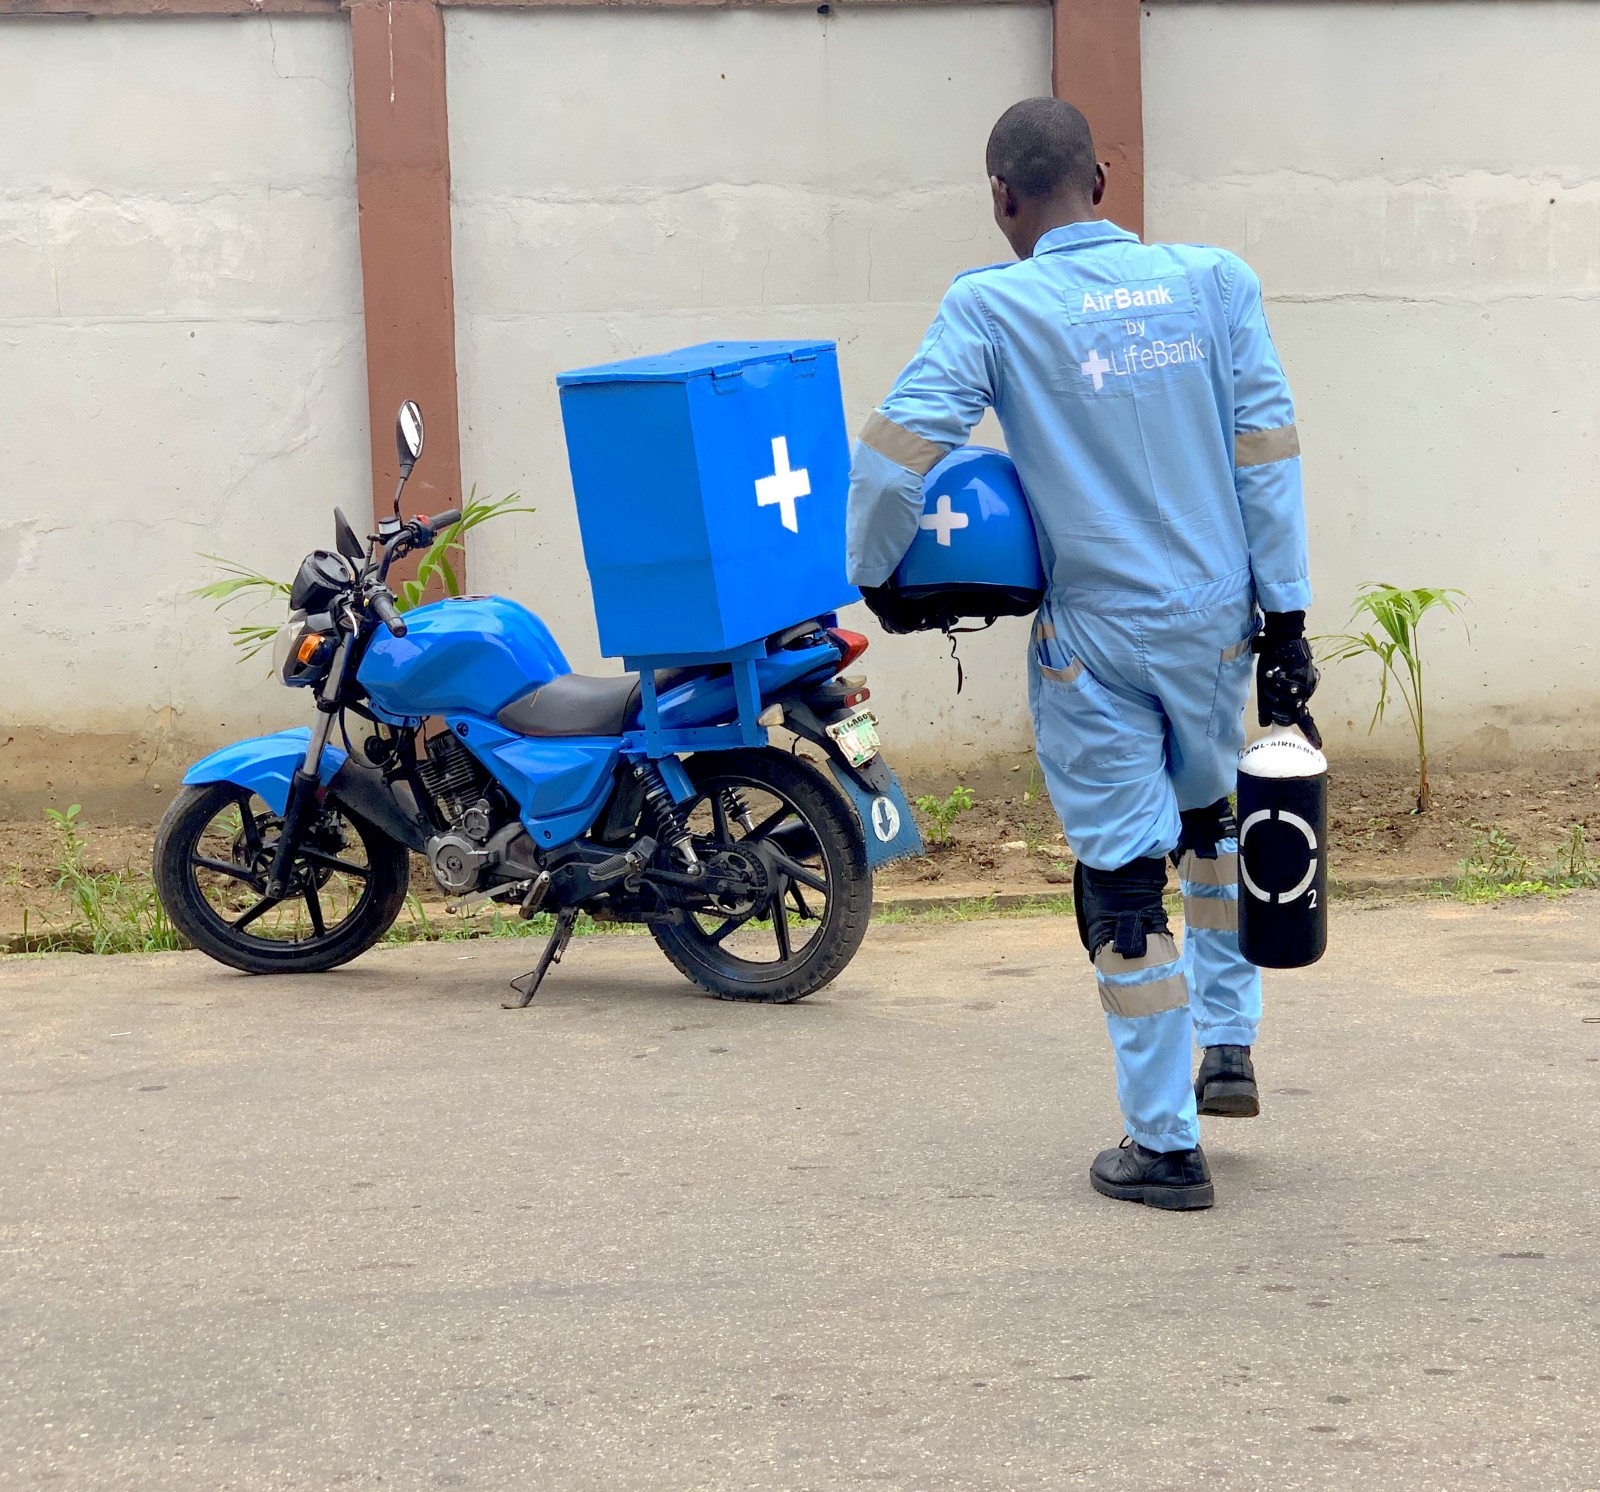 Medical Startup, Lifebank Launches AirBank, to Provide Emergency Oxygen for Kids - Brand Spur